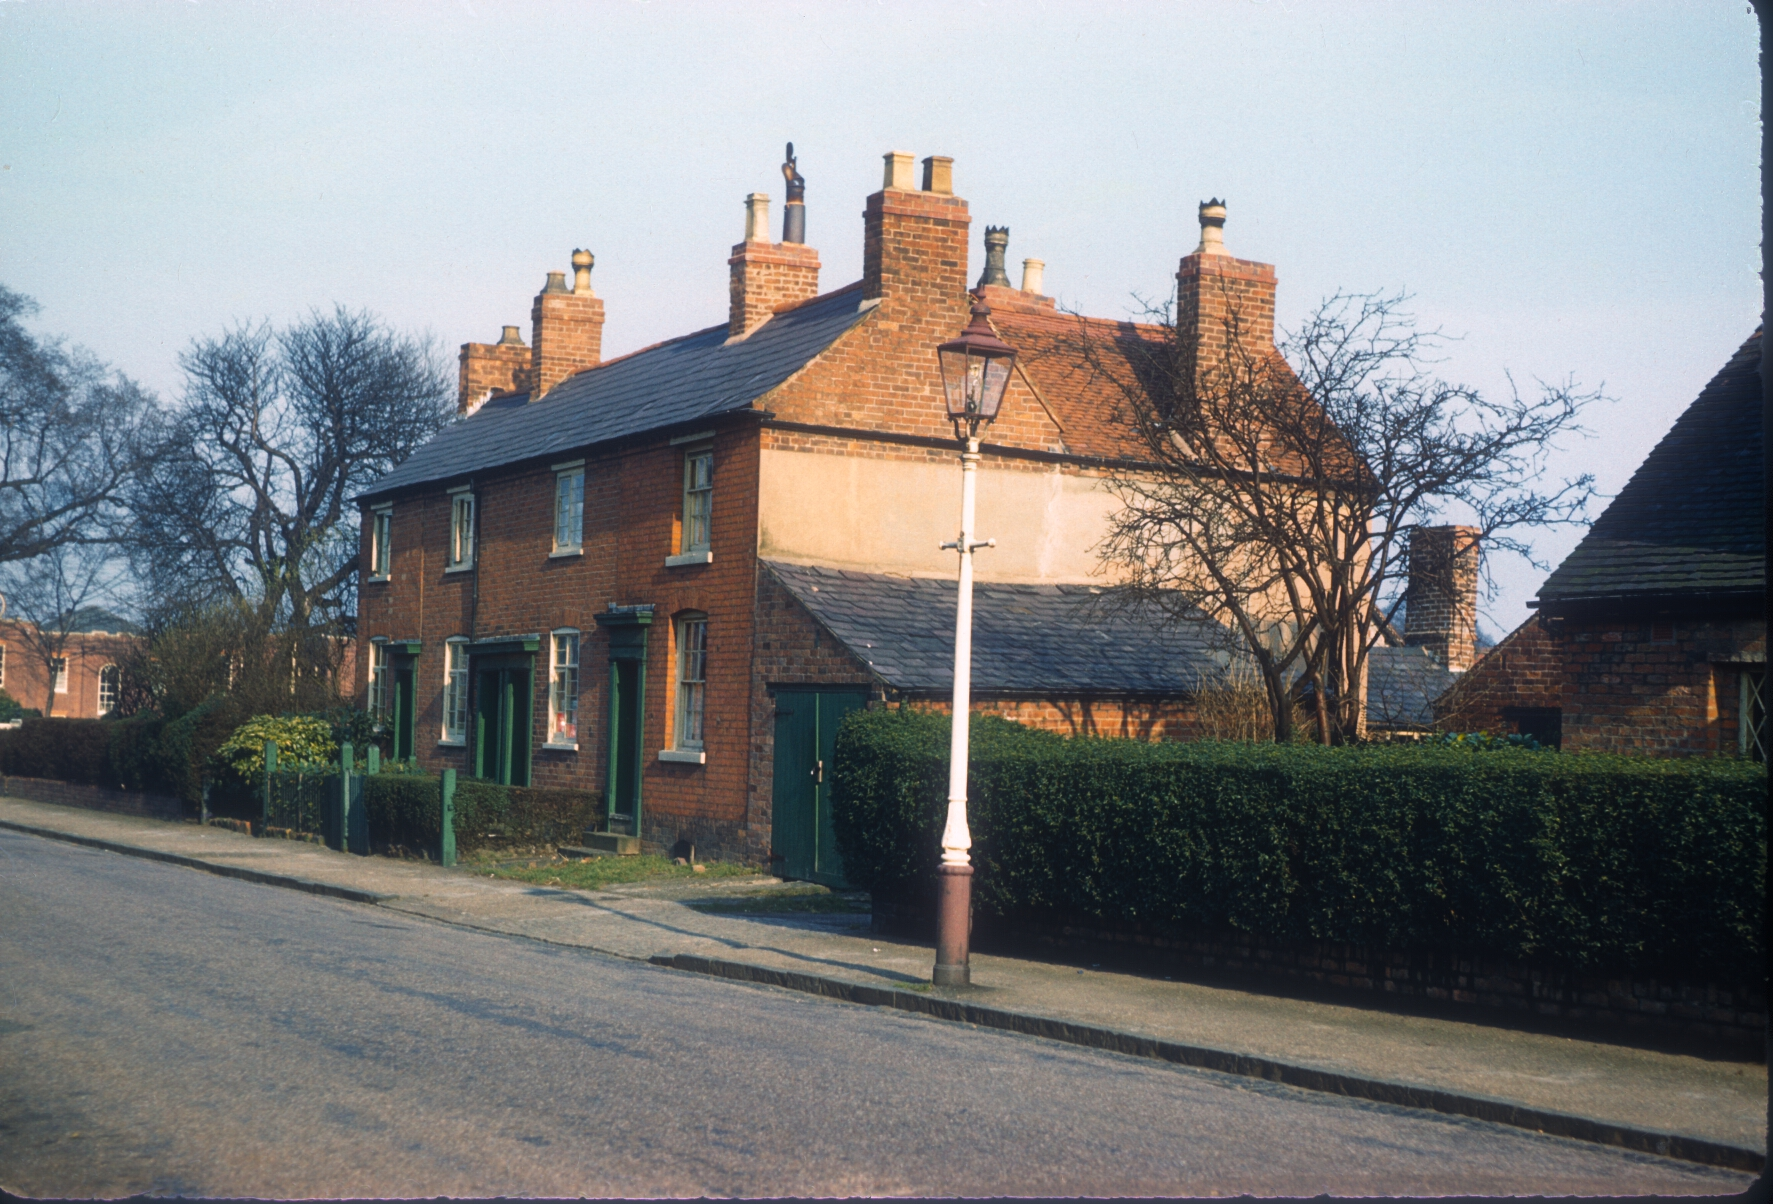 Harborne Metchley Lane, Numbers 20-26 opposite The Sportsman Public House. 6th March 1961